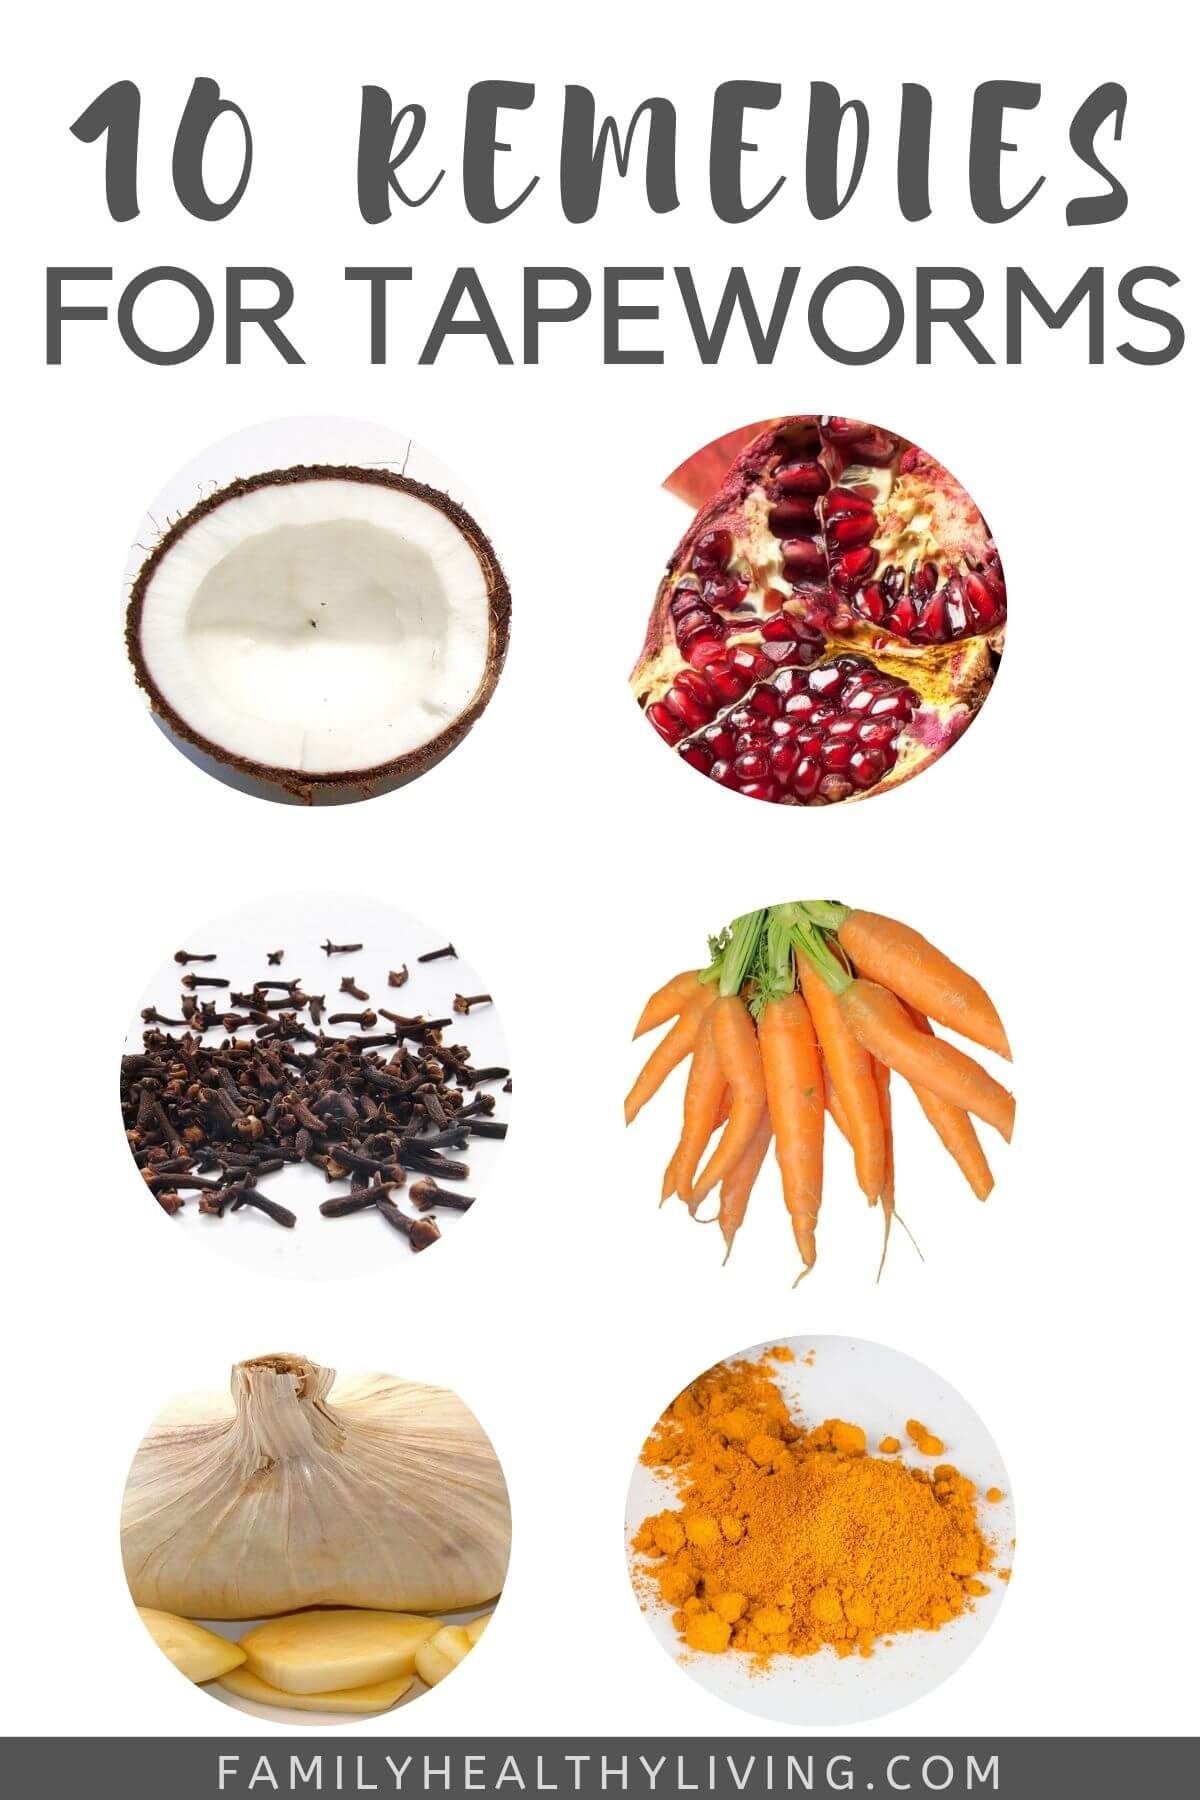 How To Get Rid Of Worms In Stool Naturally